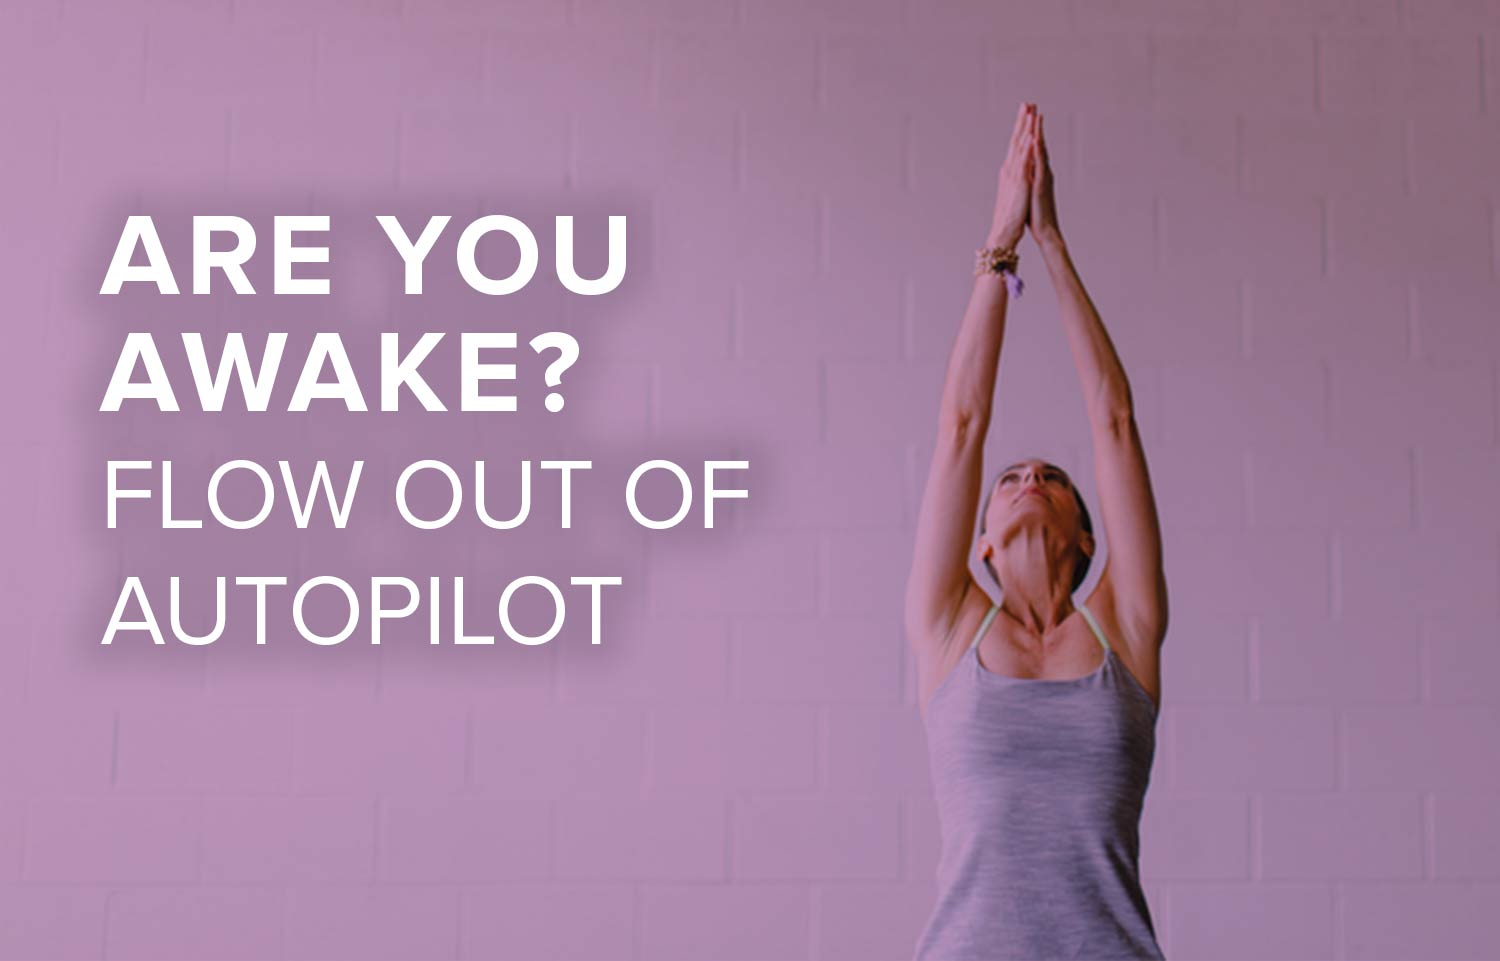 Flow Out of Autopilot